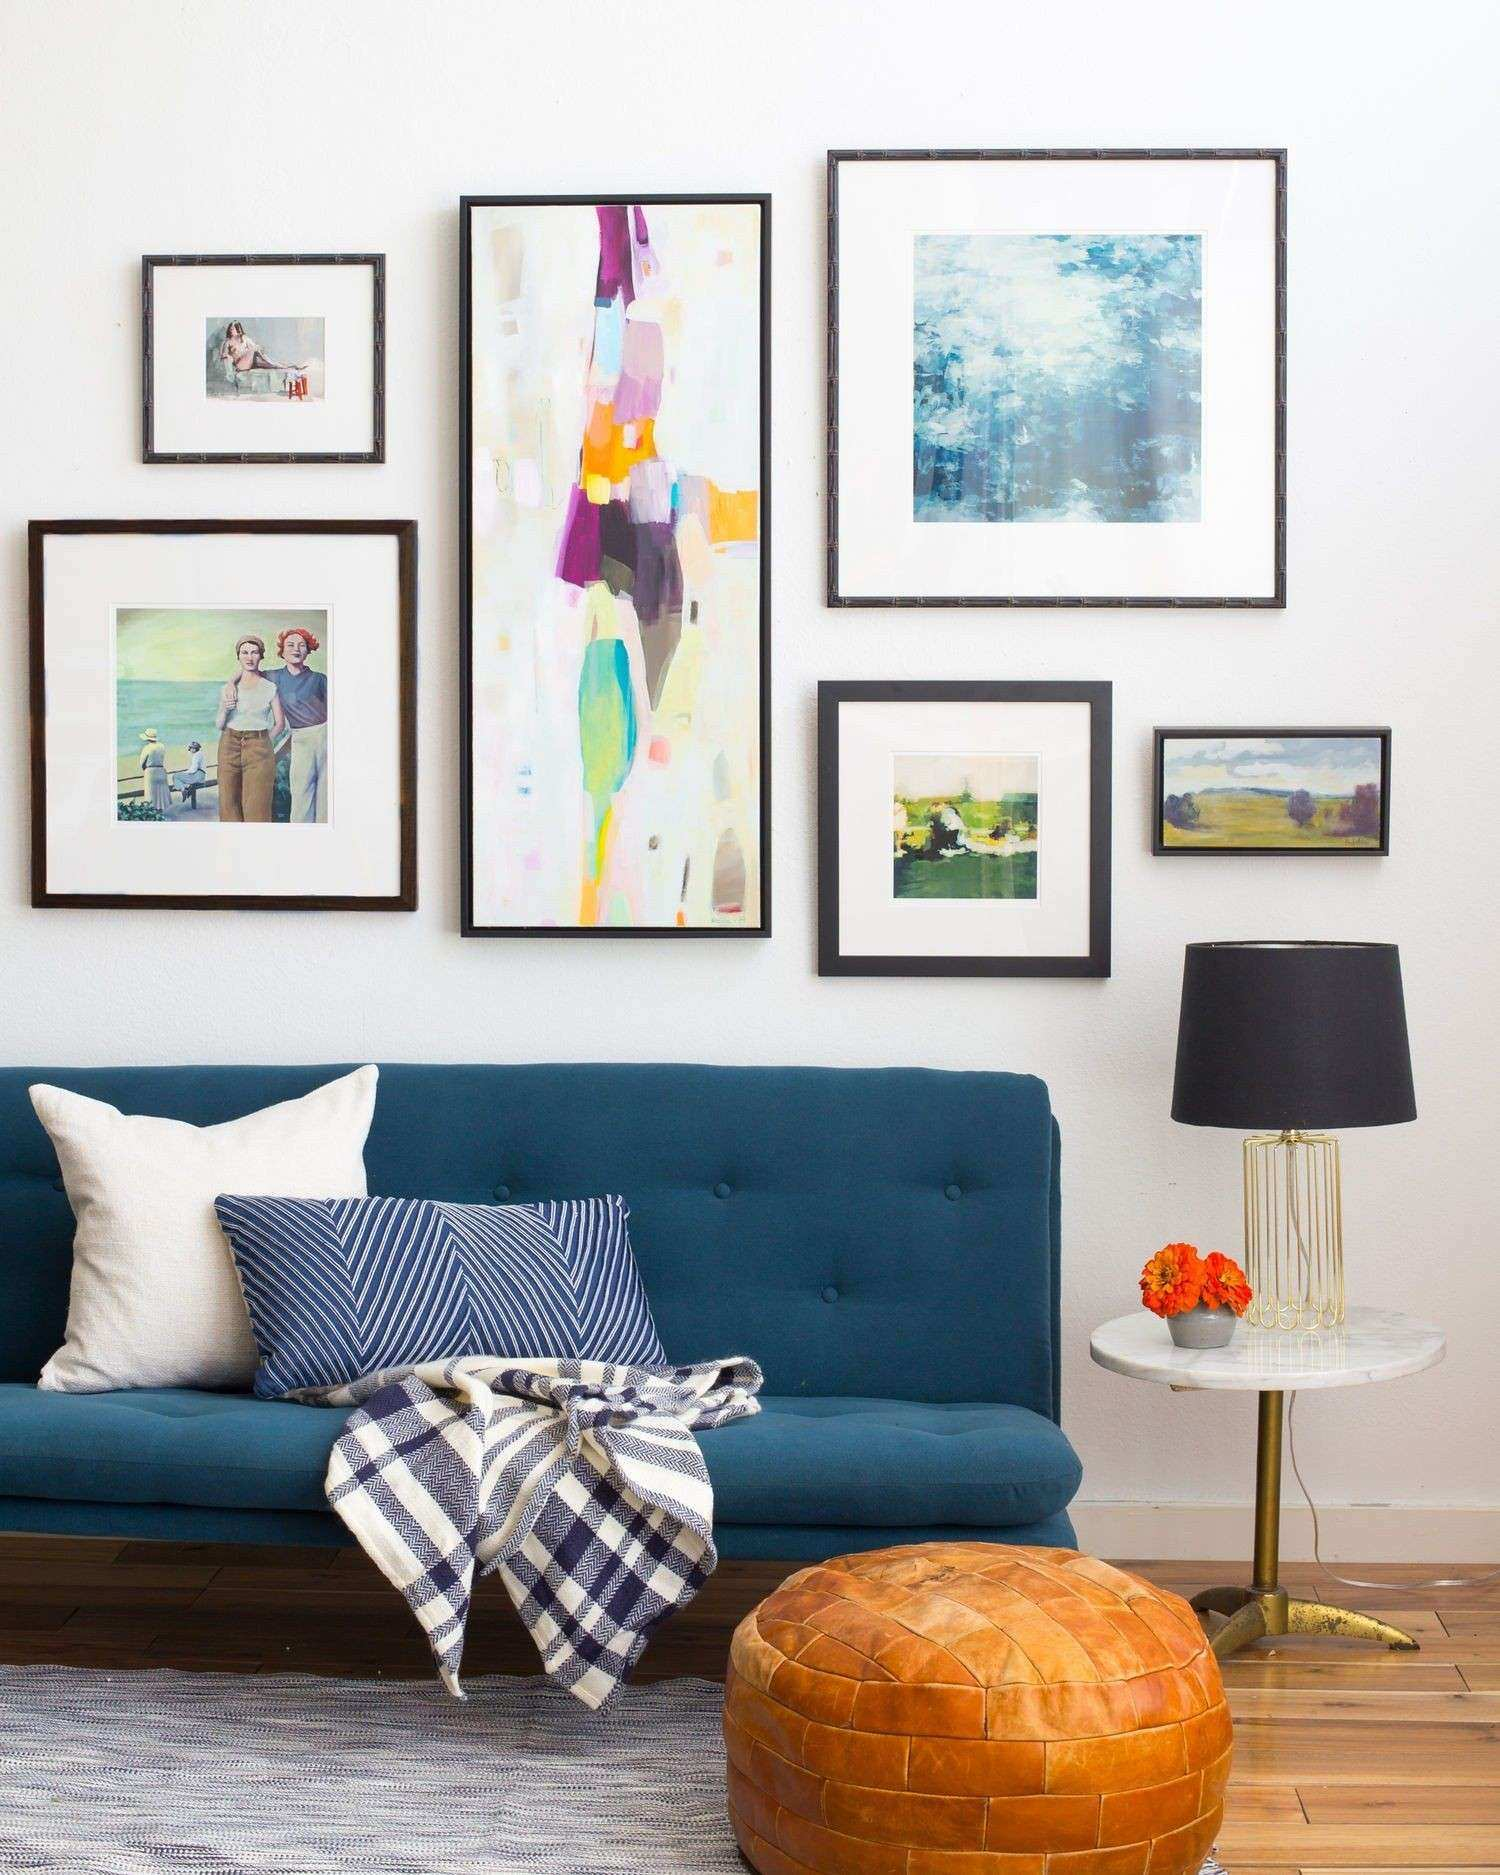 Marvelous Wall Decoration Ideas How To Create Organize And